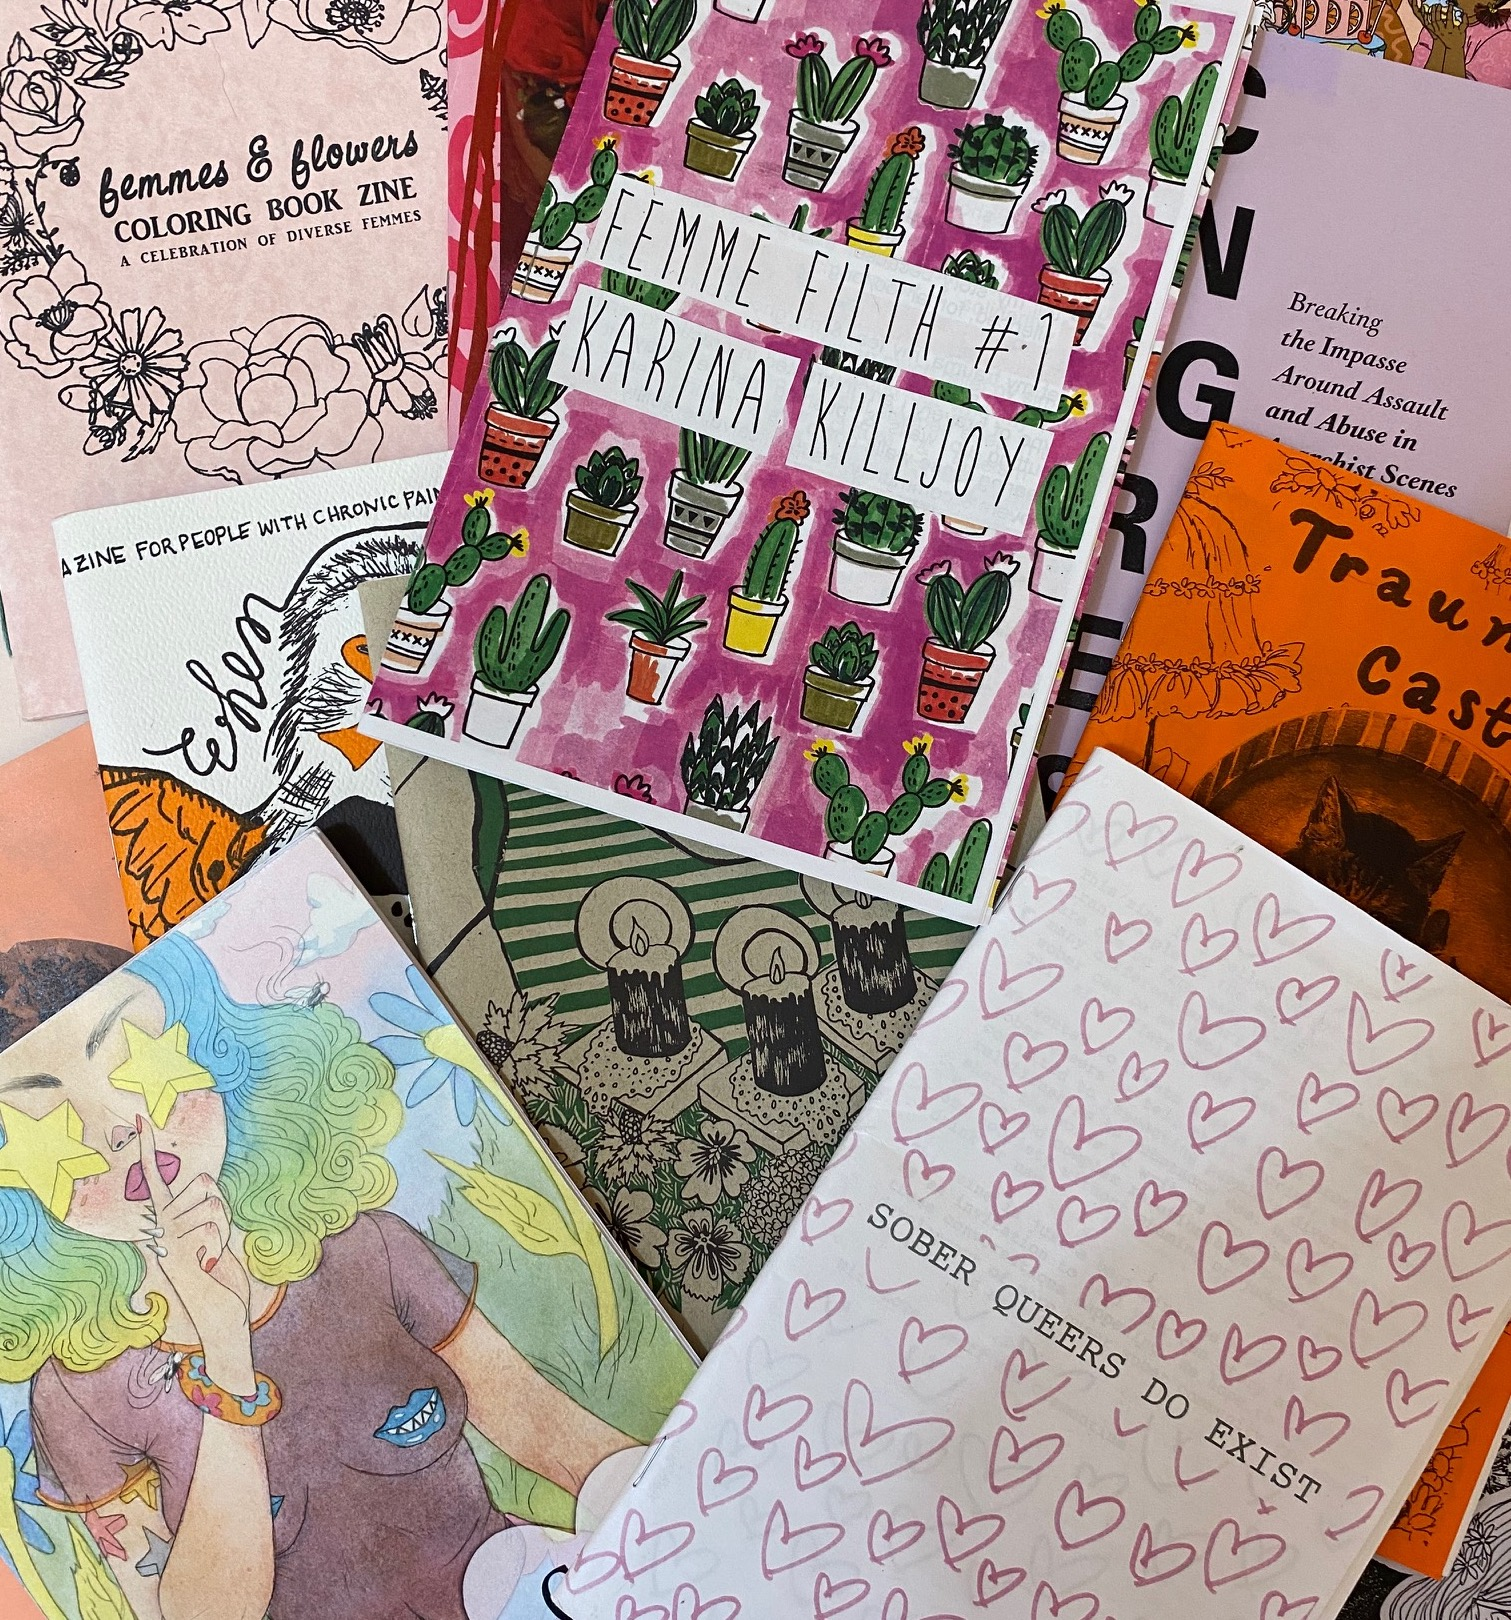 A selection of zines